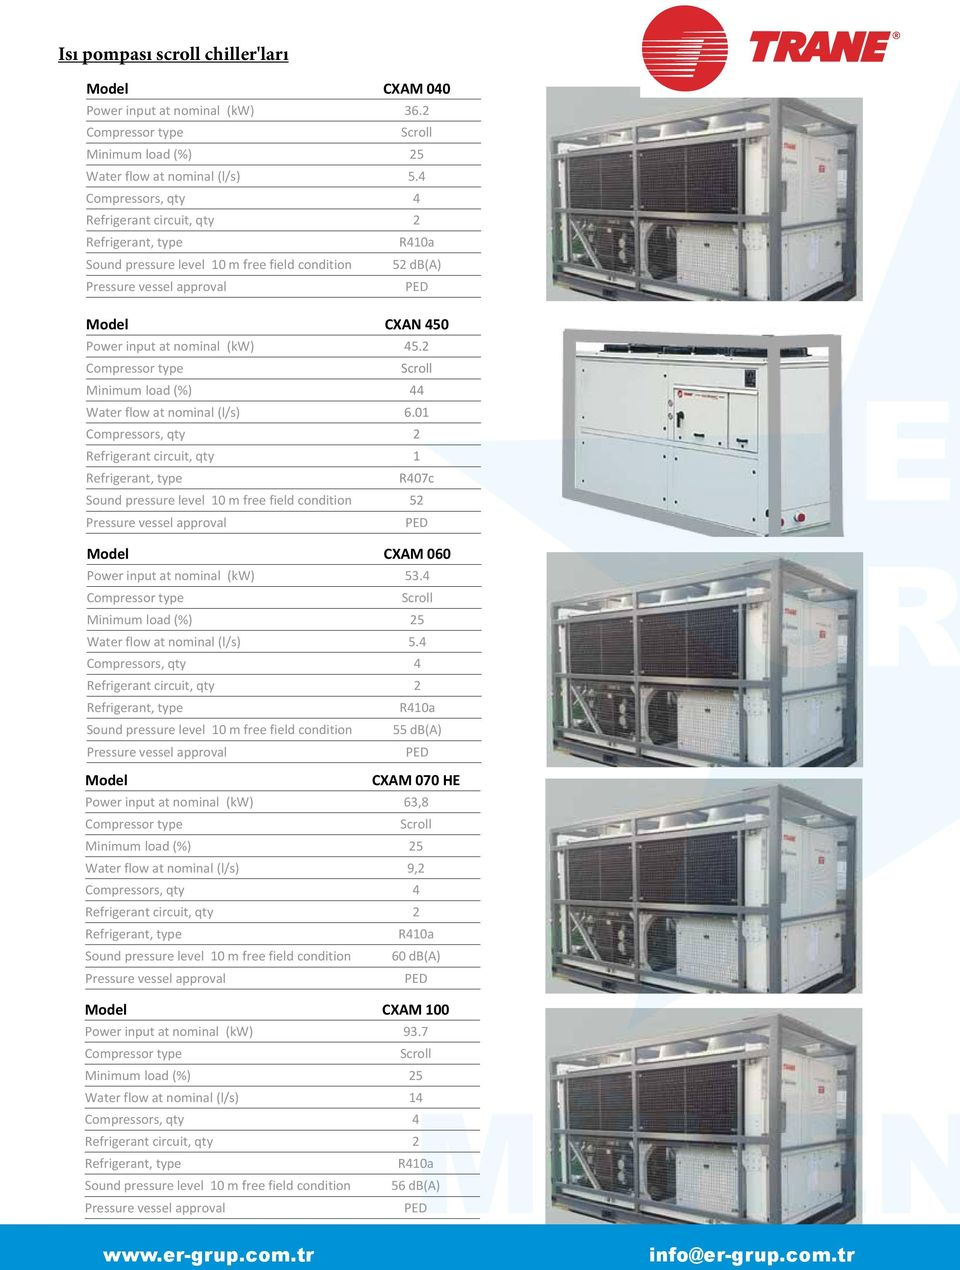 6 kw (1) 7 C chilled water and 35 C air Sound pressure level 10 m free field condition 52 db(a) Pressure vessel approval PED Model CXAN 450 Operating range Power input at nominal (kw) 45.